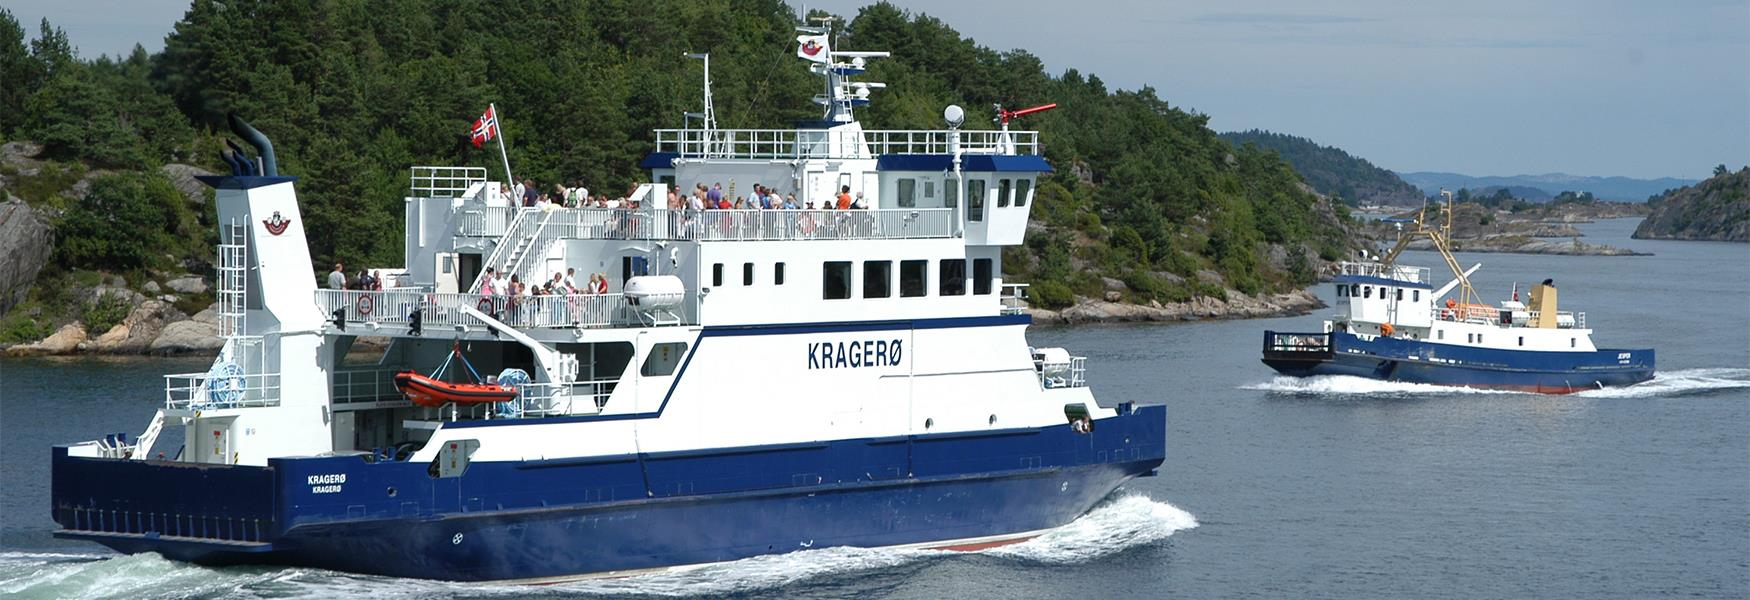 Ferries in the Kragerø archipelago